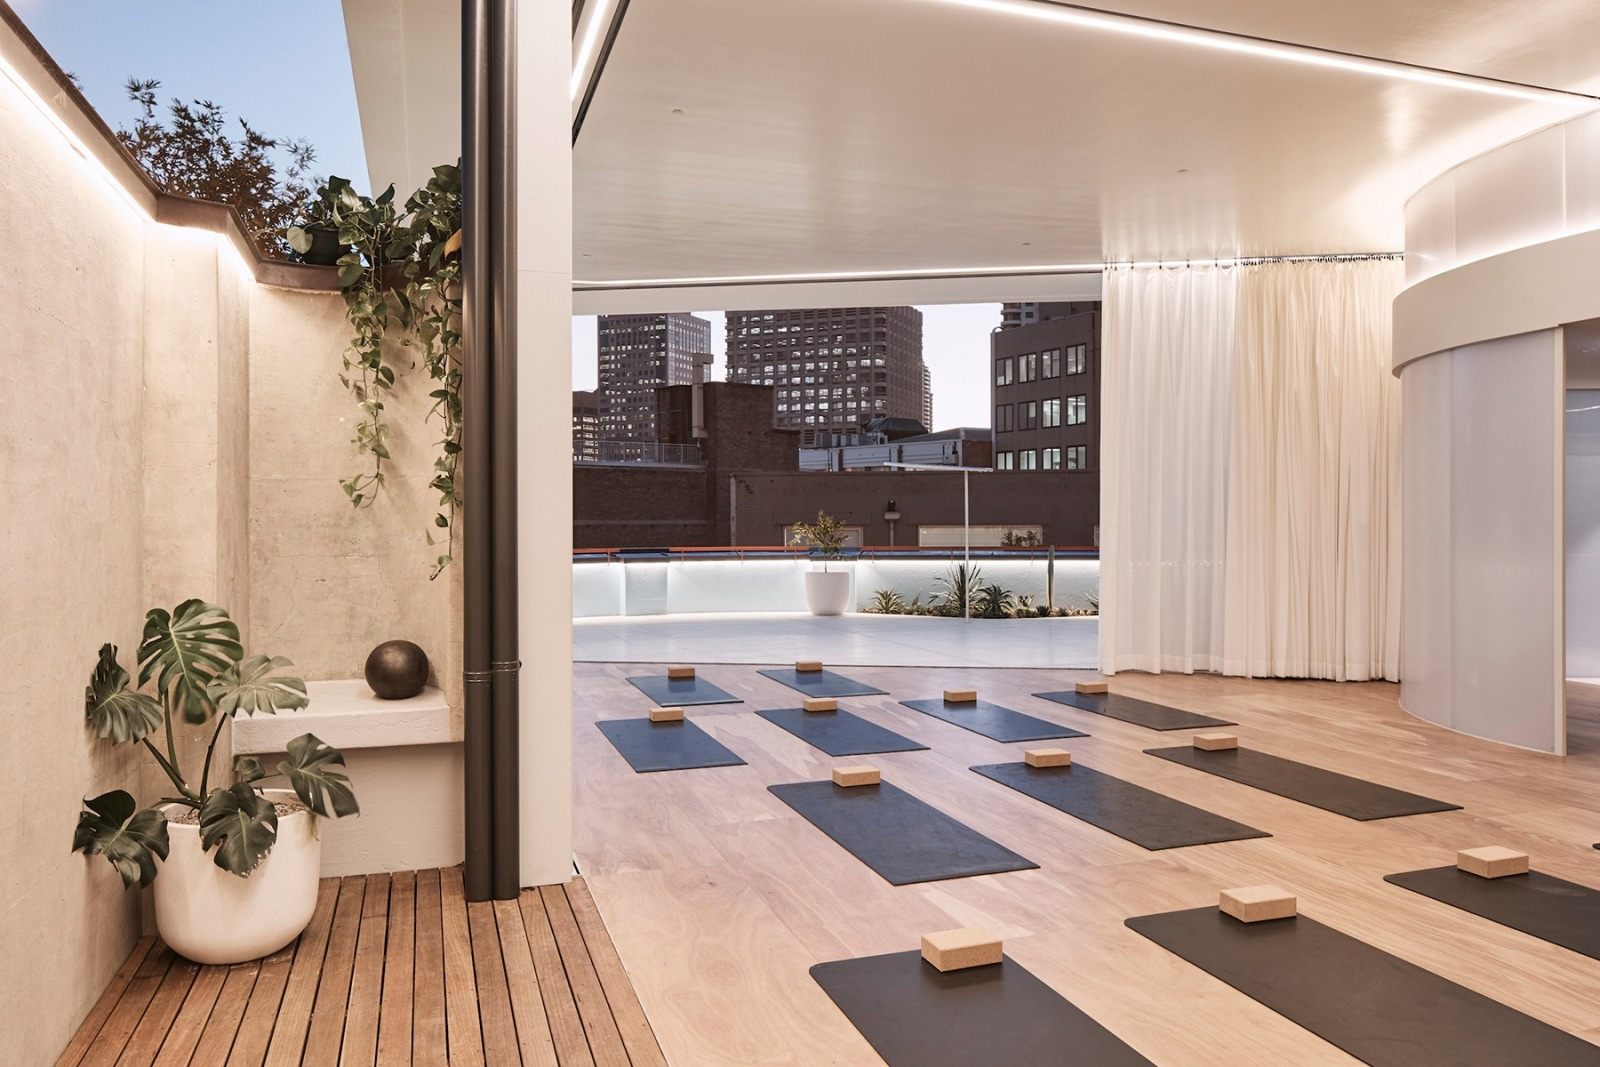 Gyms that raise the bar for design: Paramount Rec Club